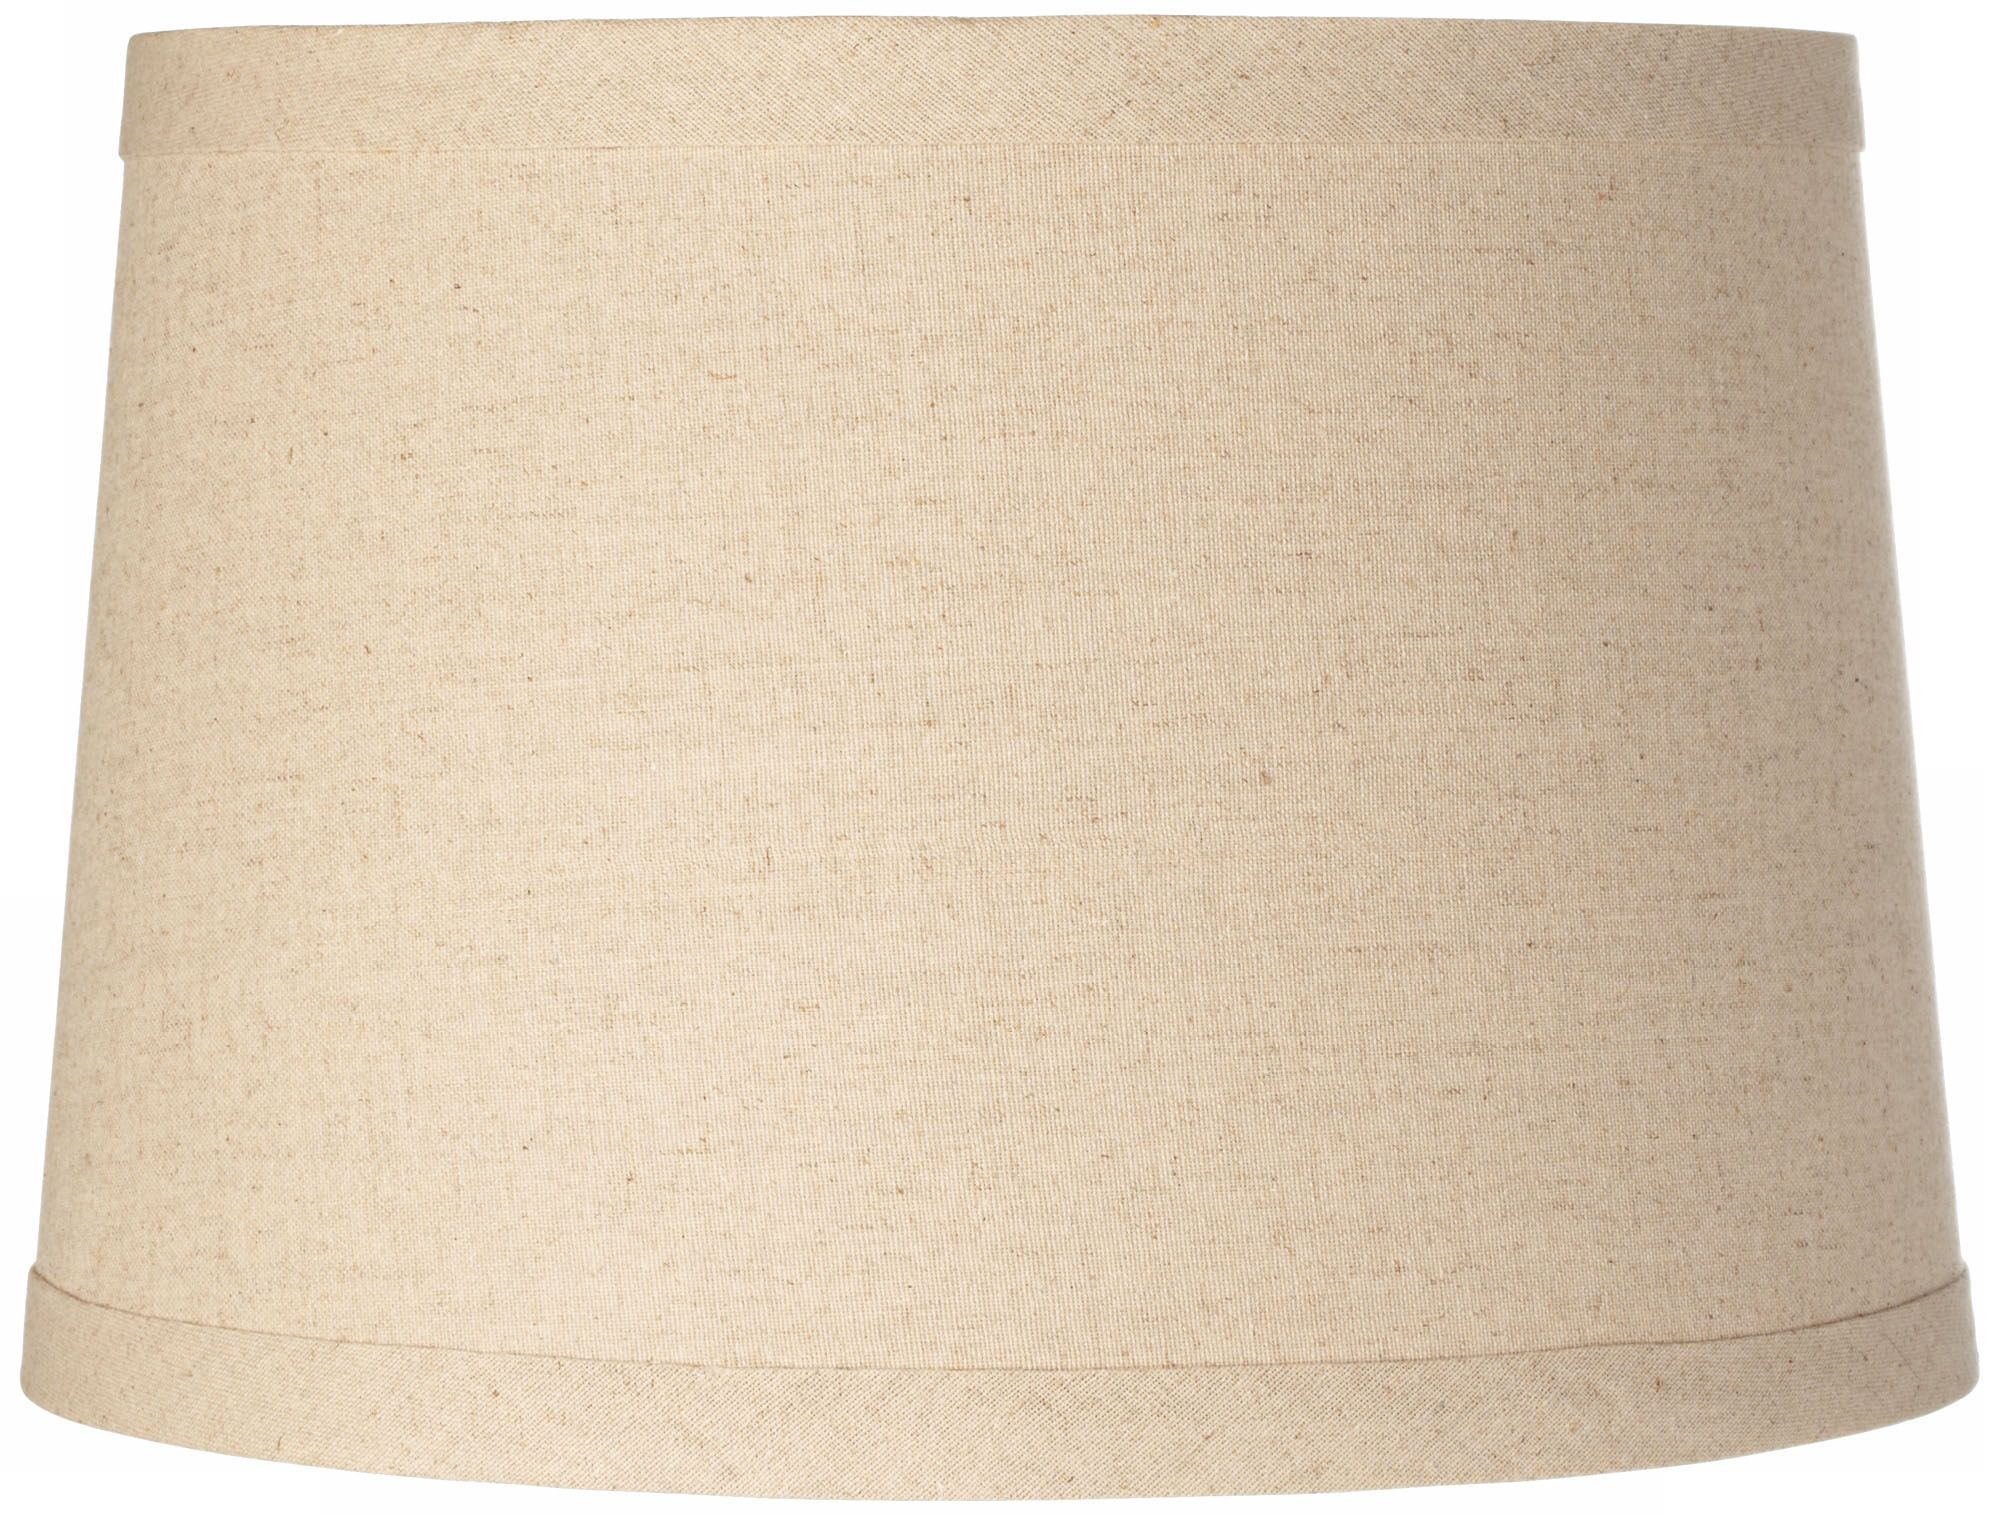 Burlap Drum Lamp Shade 14x16x11 (Spider)